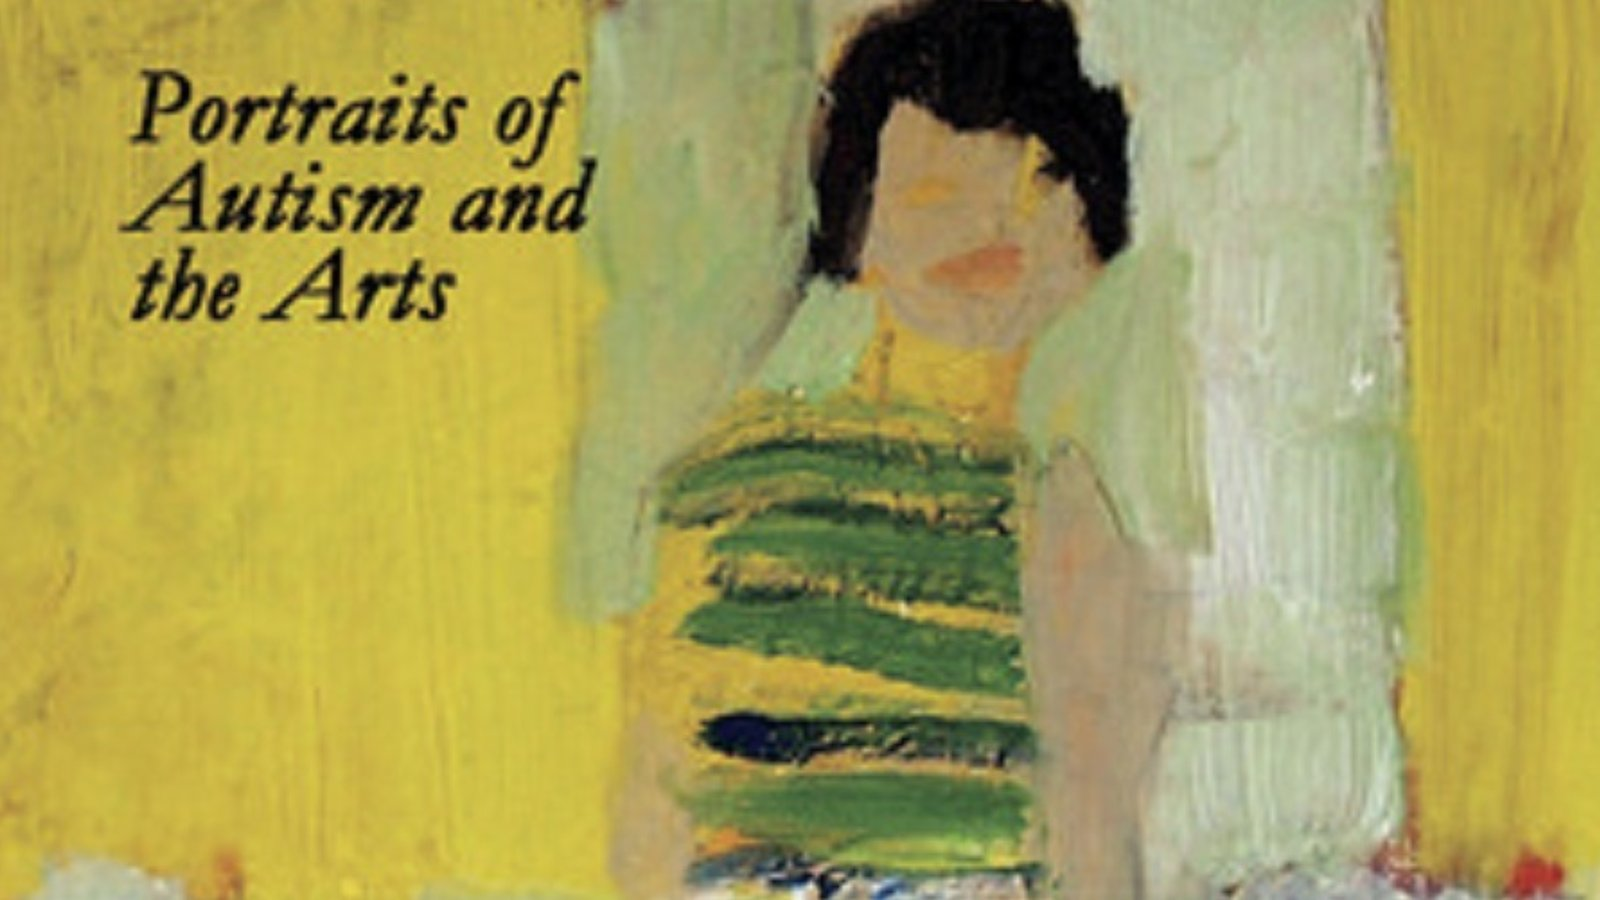 Generation A - Portraits of Autism and the Arts